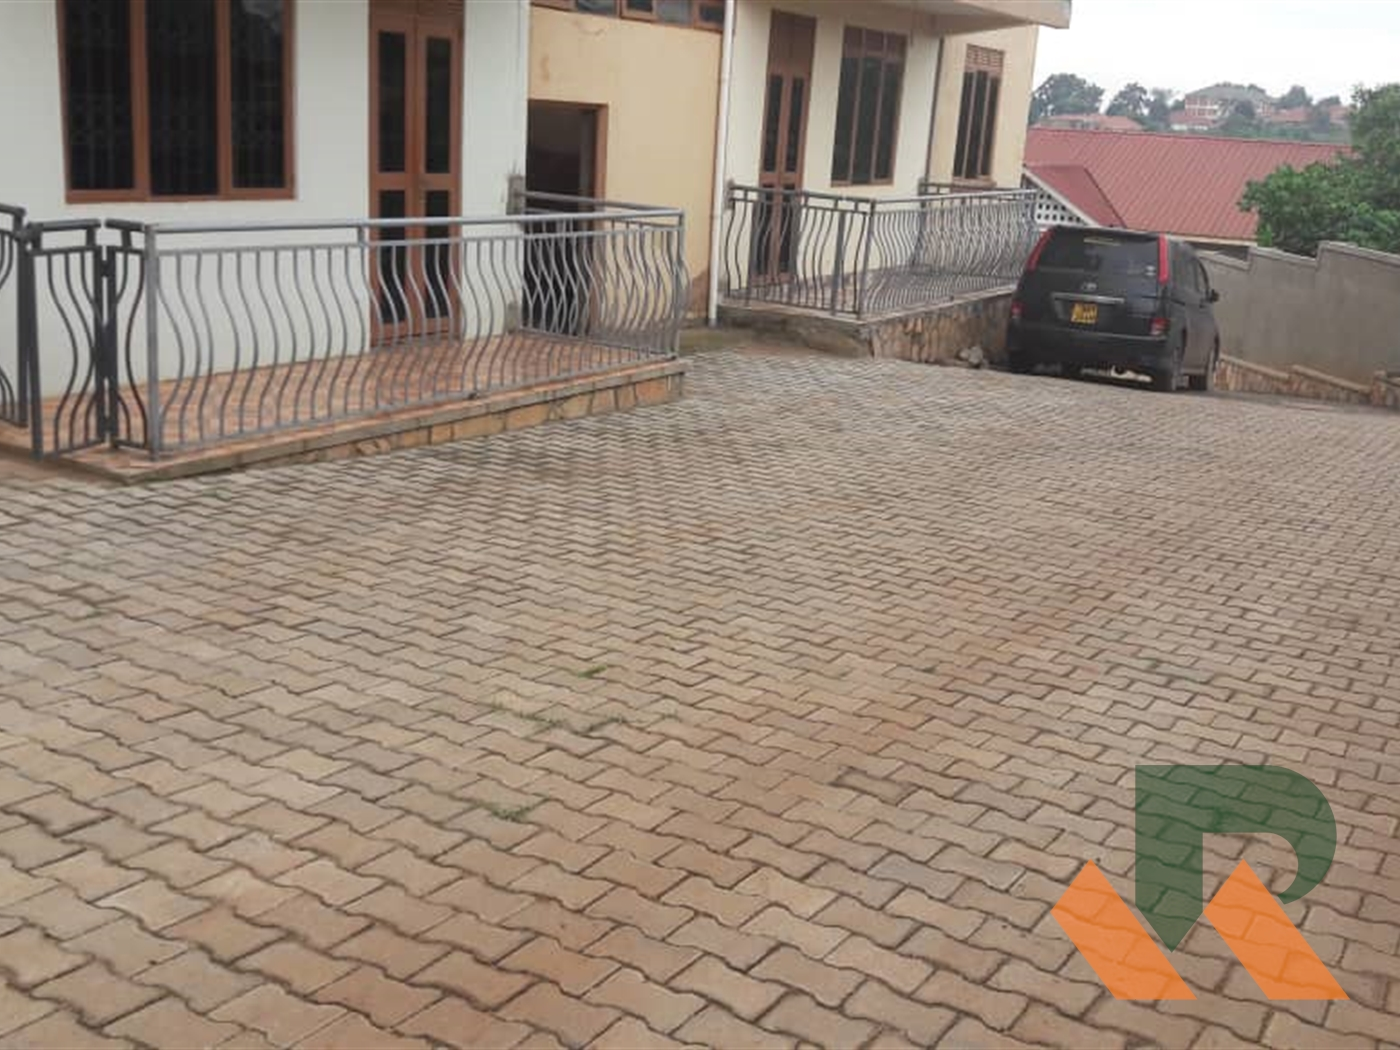 Apartment for rent in Kyaliwajjala Wakiso